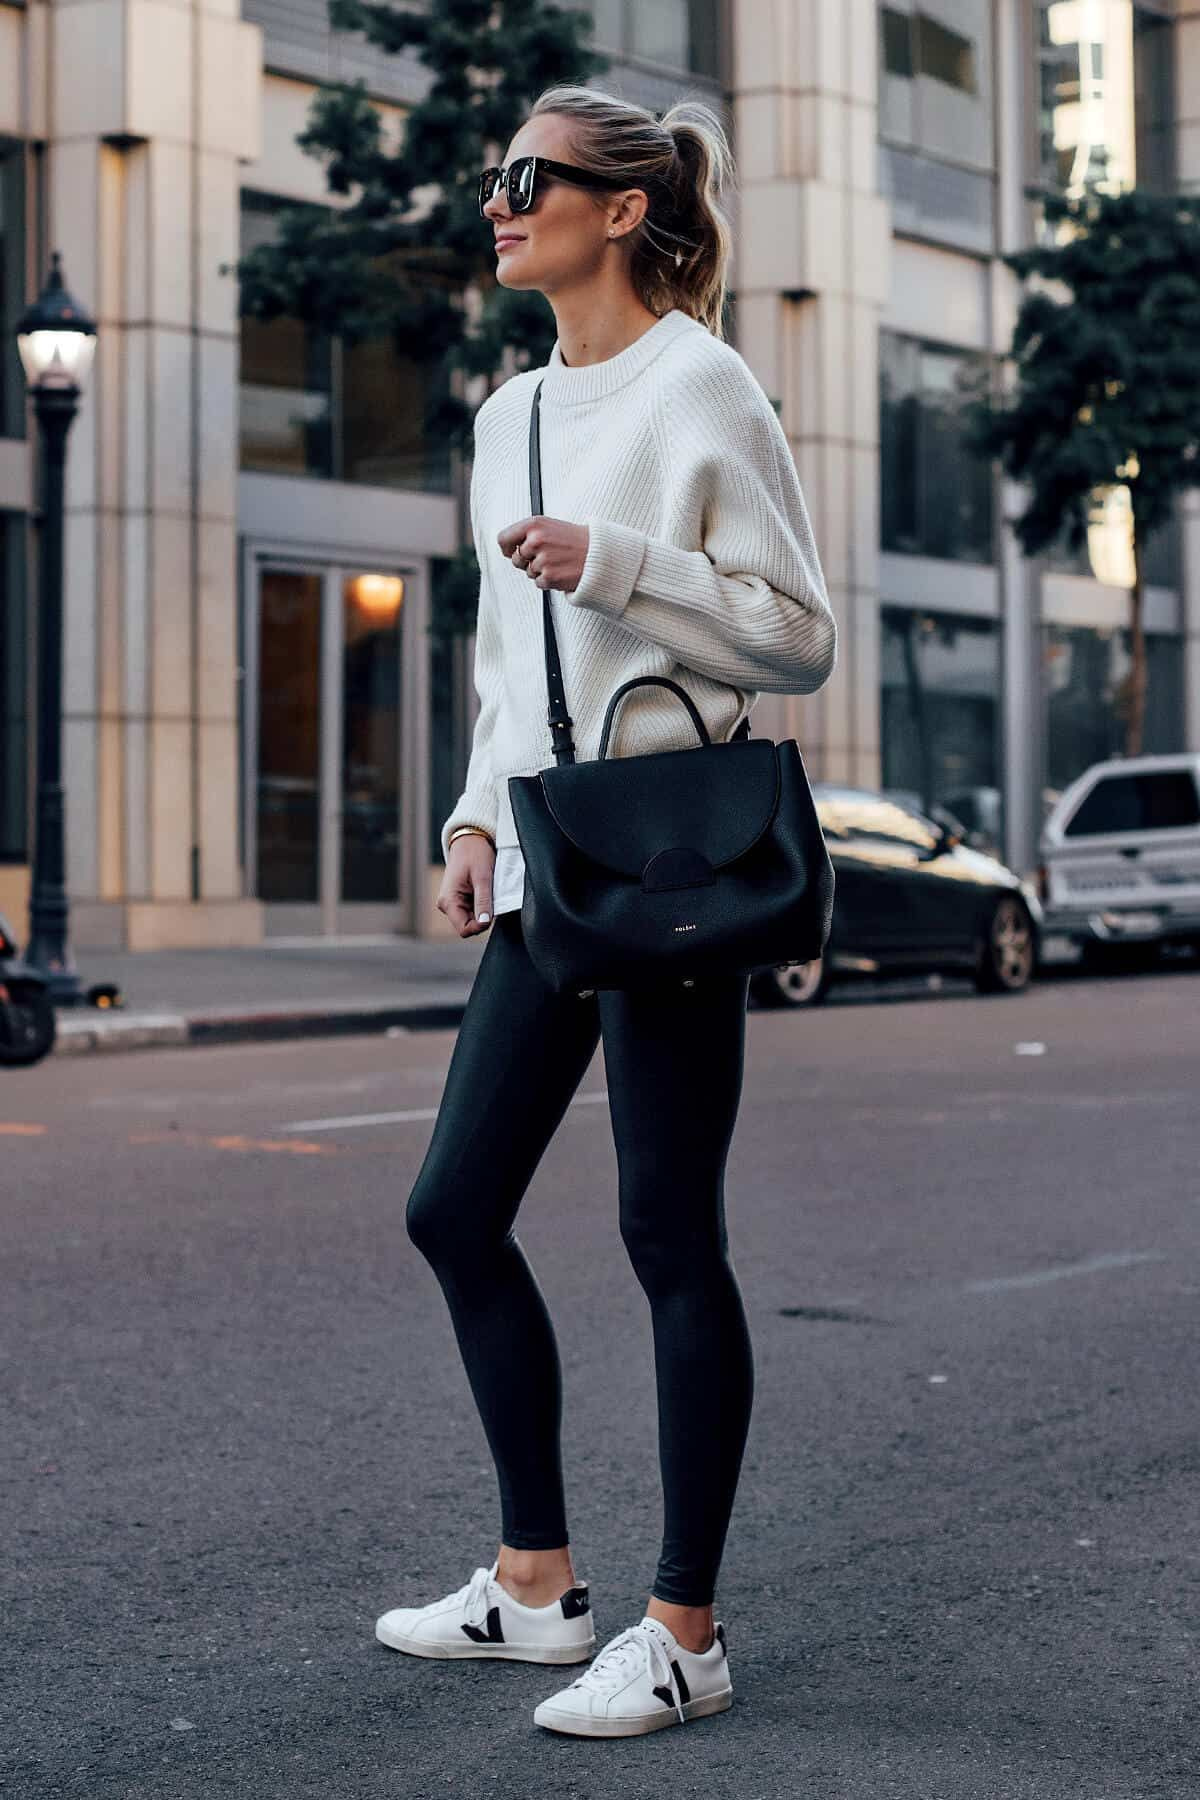 Spanx Leather Legging Outfit Ideas Outfits With Leggings Fashion Jackson Athleisure Outfits [ 1800 x 1200 Pixel ]